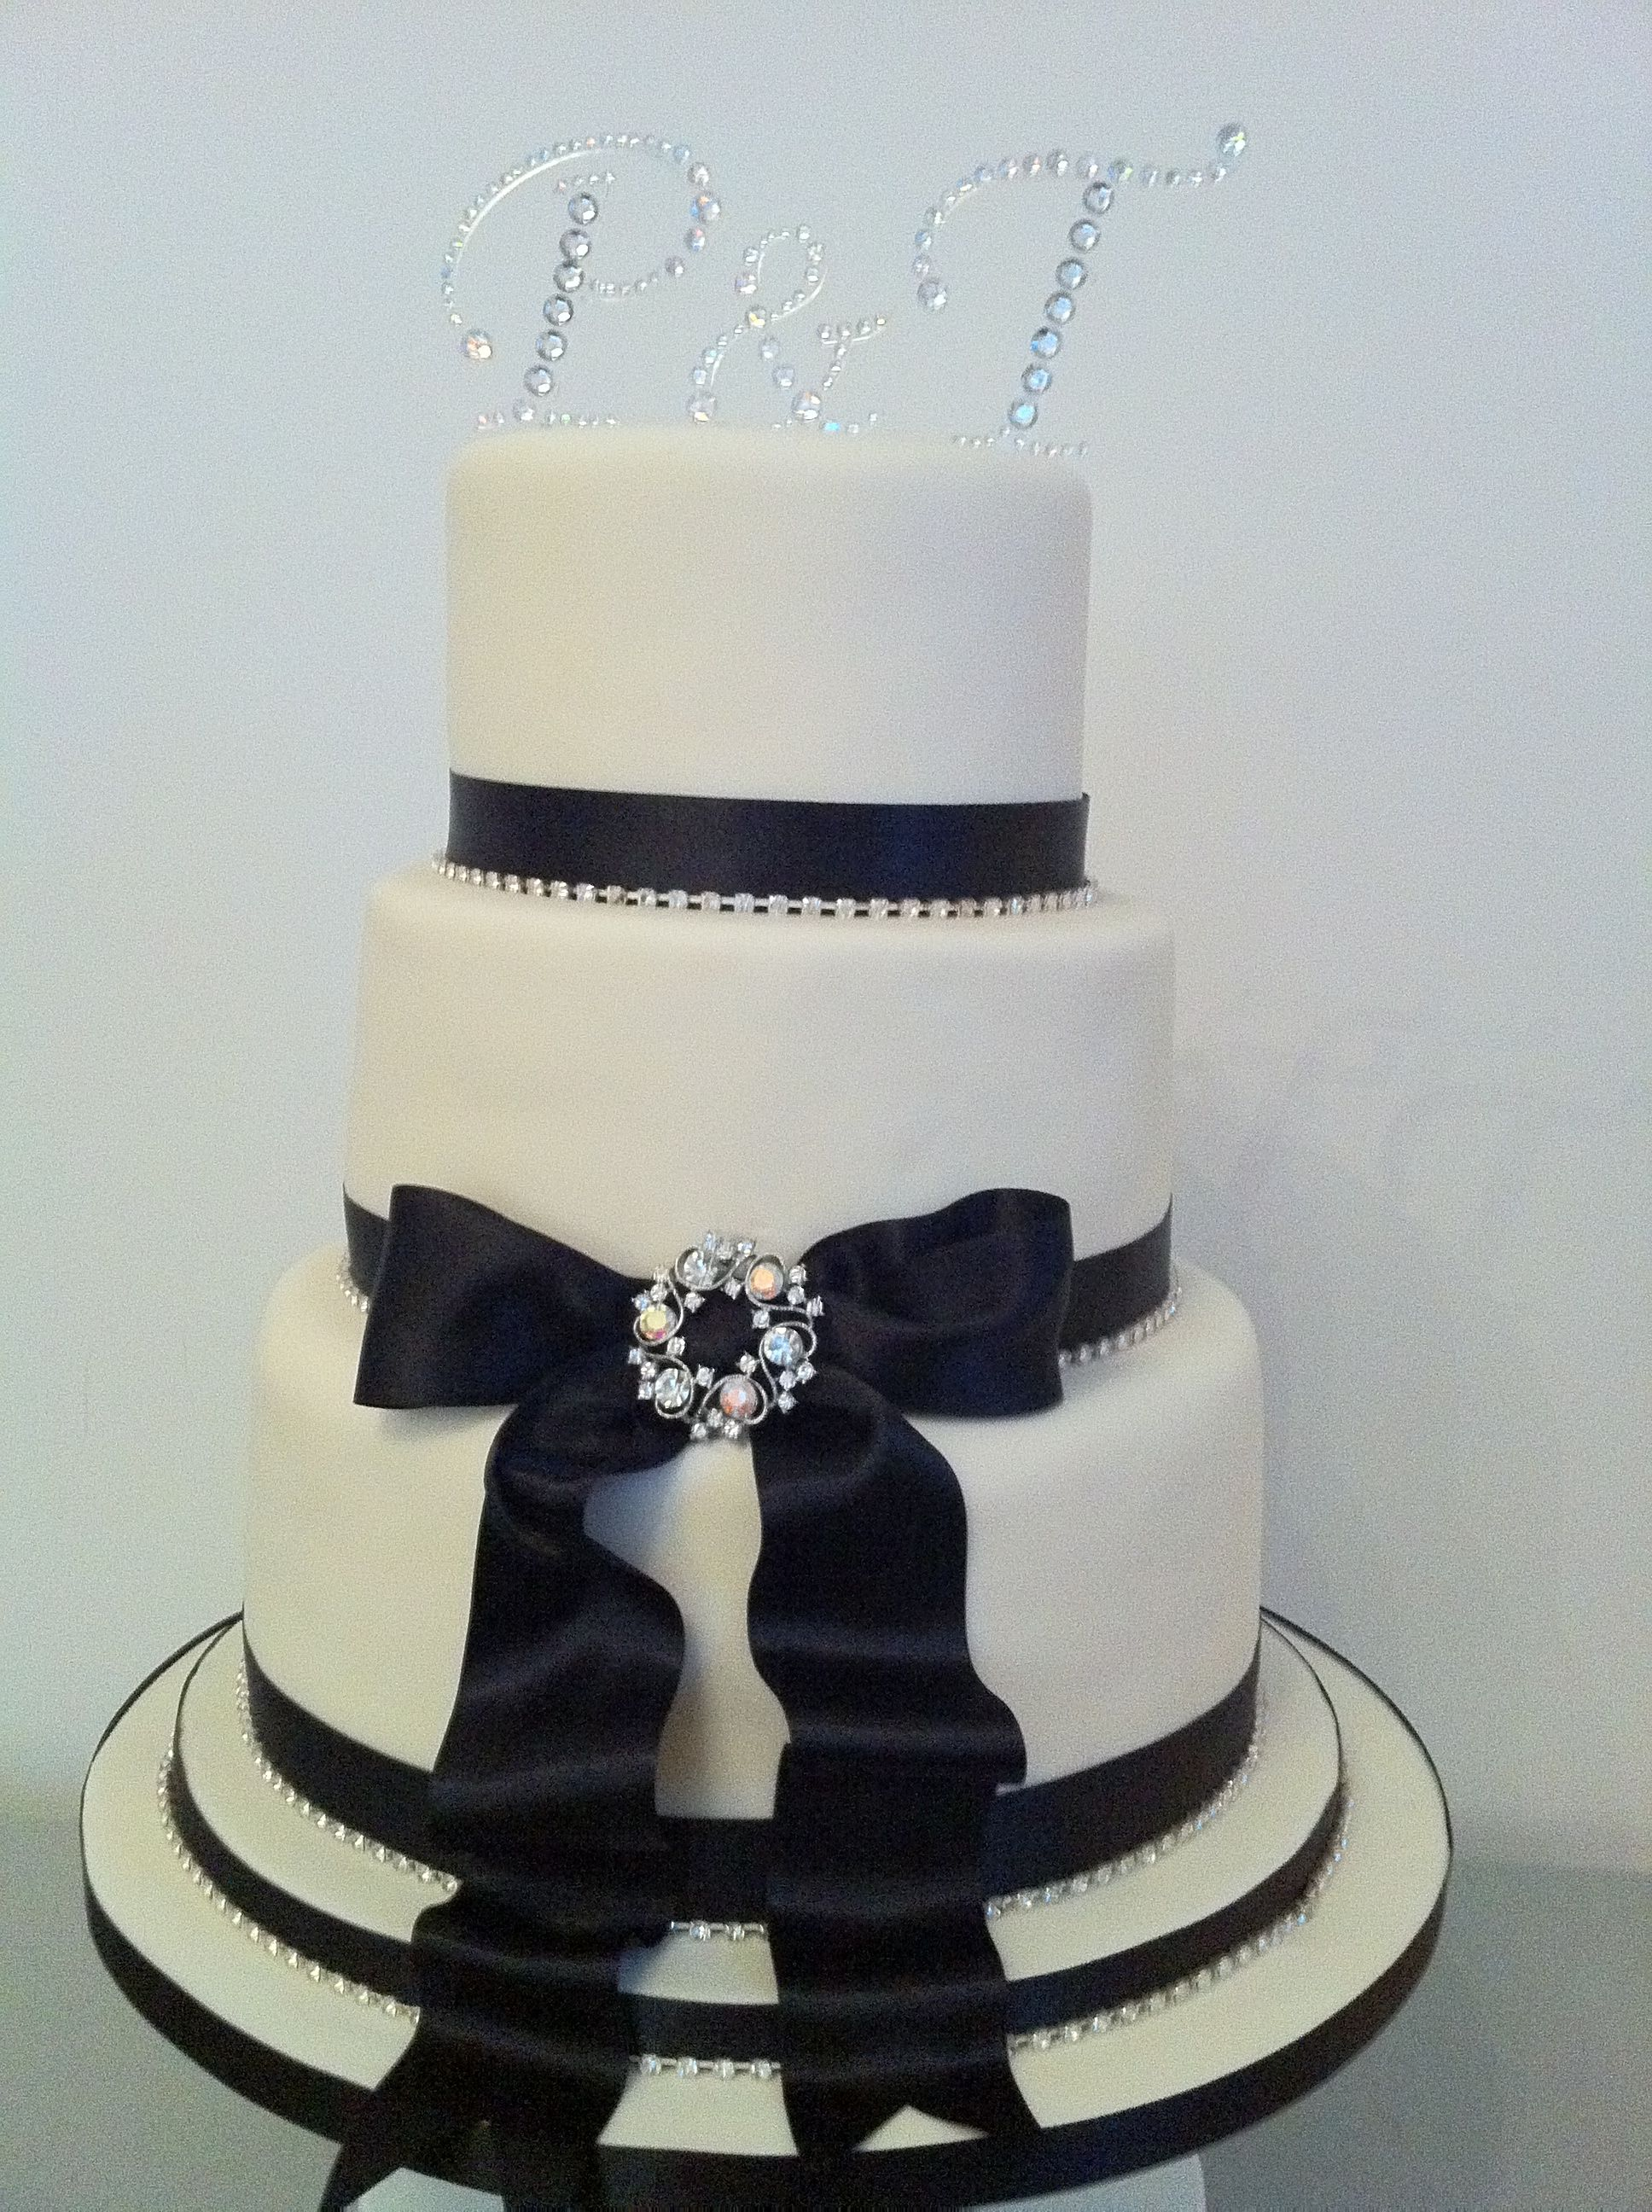 Wedding Cake- goes perfect with the red, black, and pearl/bling ...